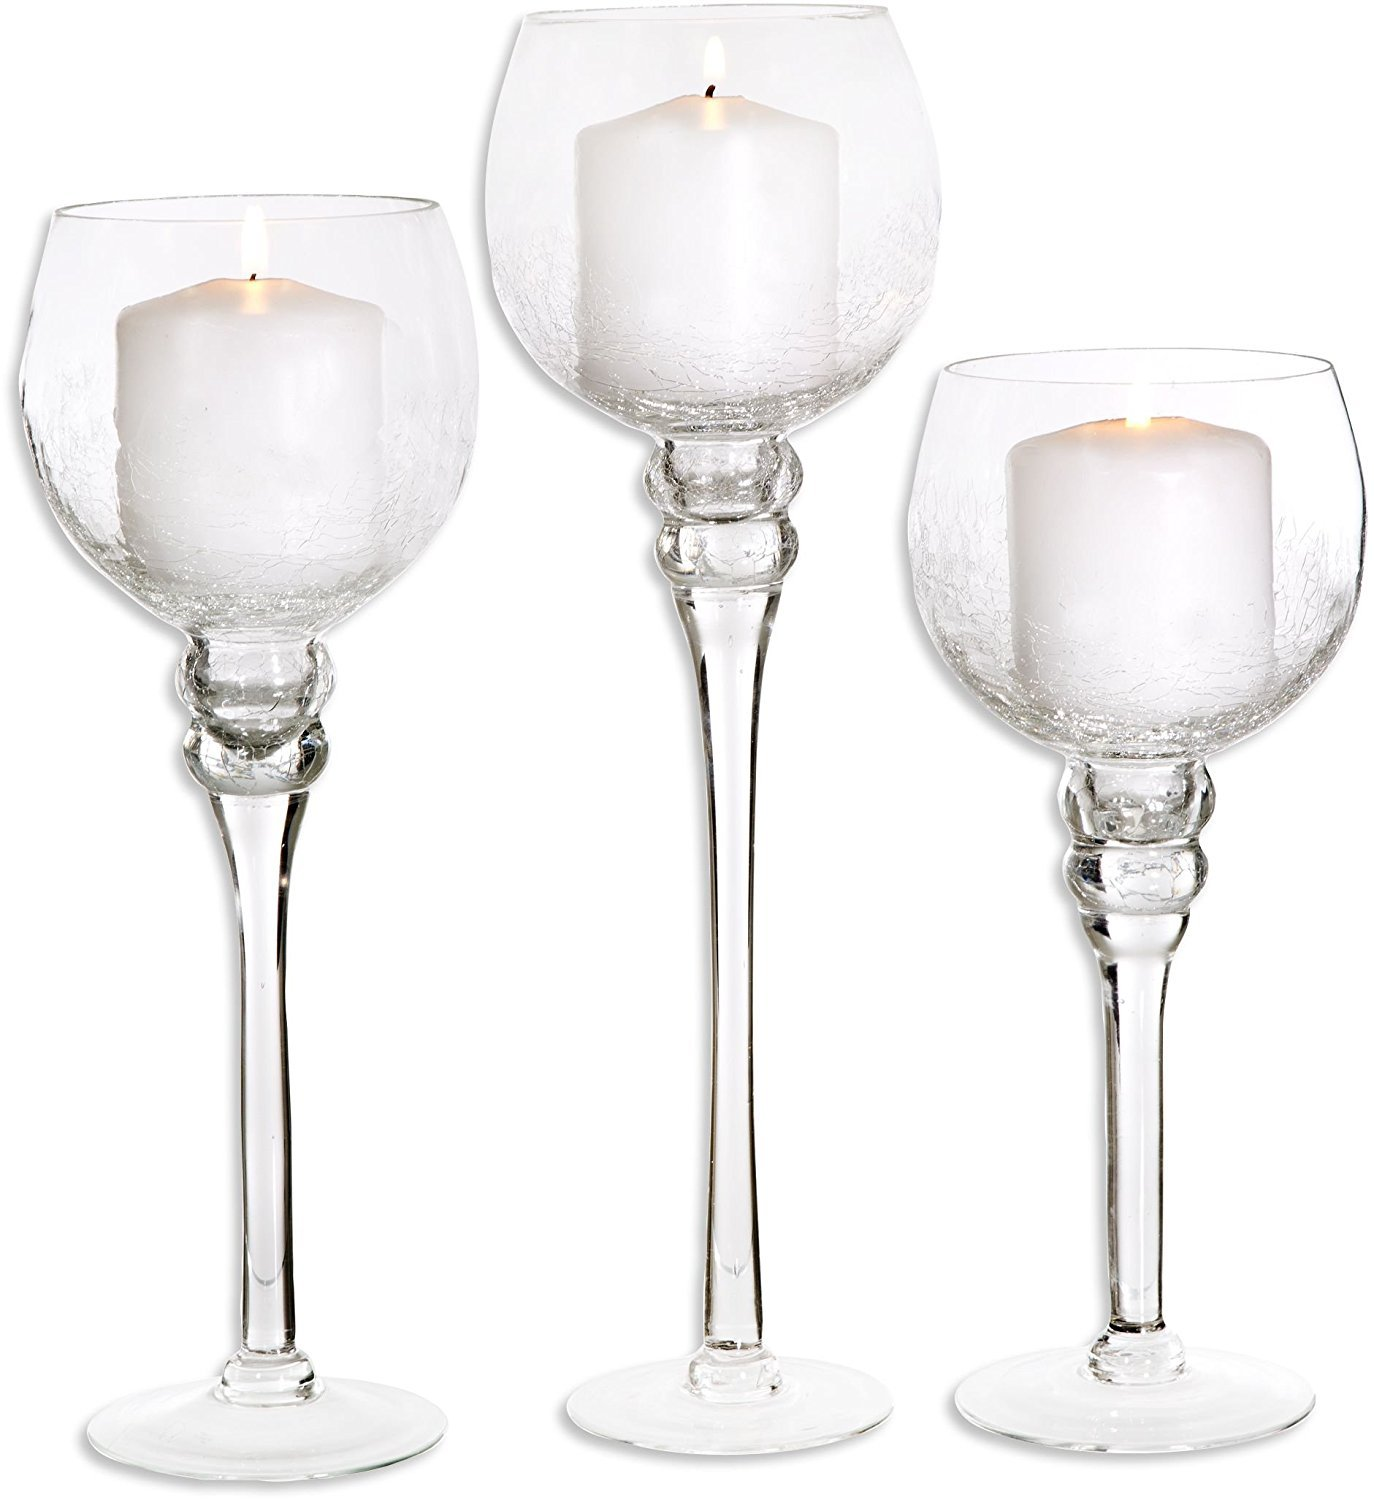 Amazon set of 3 crackle finished glass hurricane candle amazon set of 3 crackle finished glass hurricane candle holders decorative sphere ball candle holders home decor party centerpiece home reviewsmspy